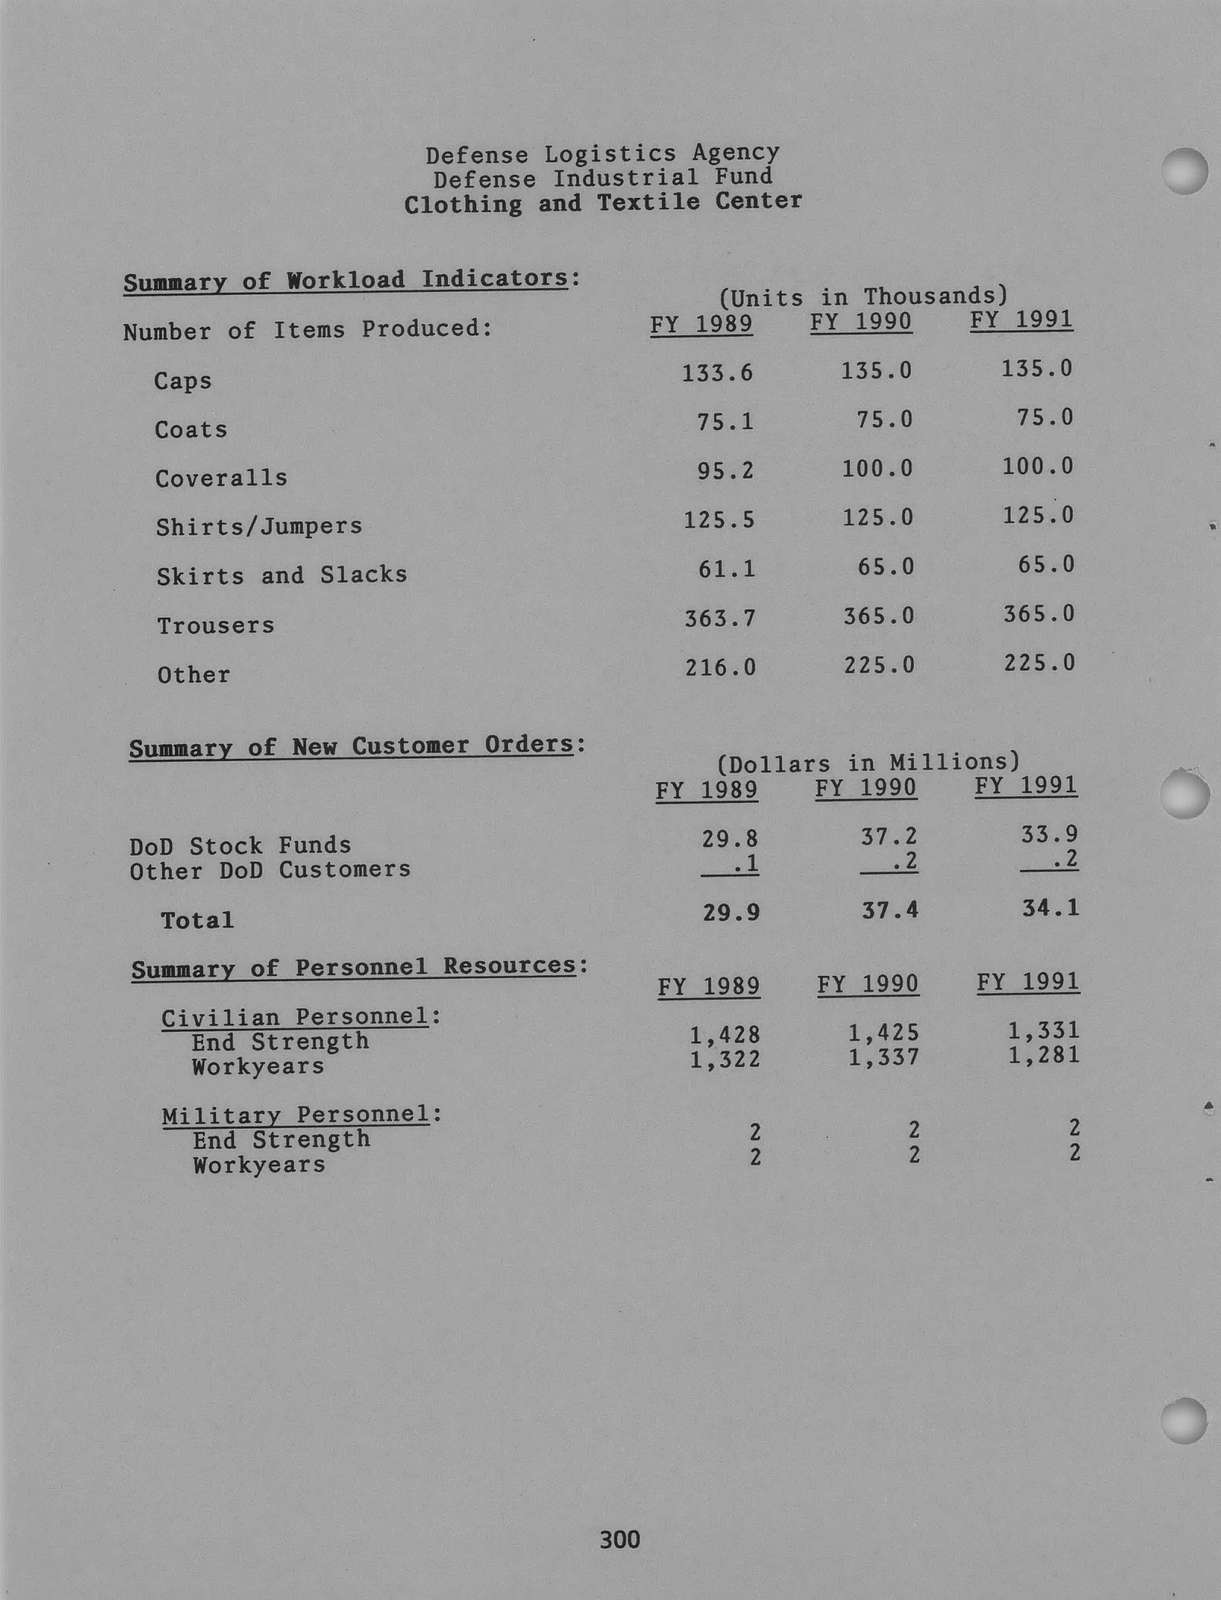 Office of the Secretary of Defense Industrial Fund Overview FY 1991, Office of the Secretary of Defense, February 1990